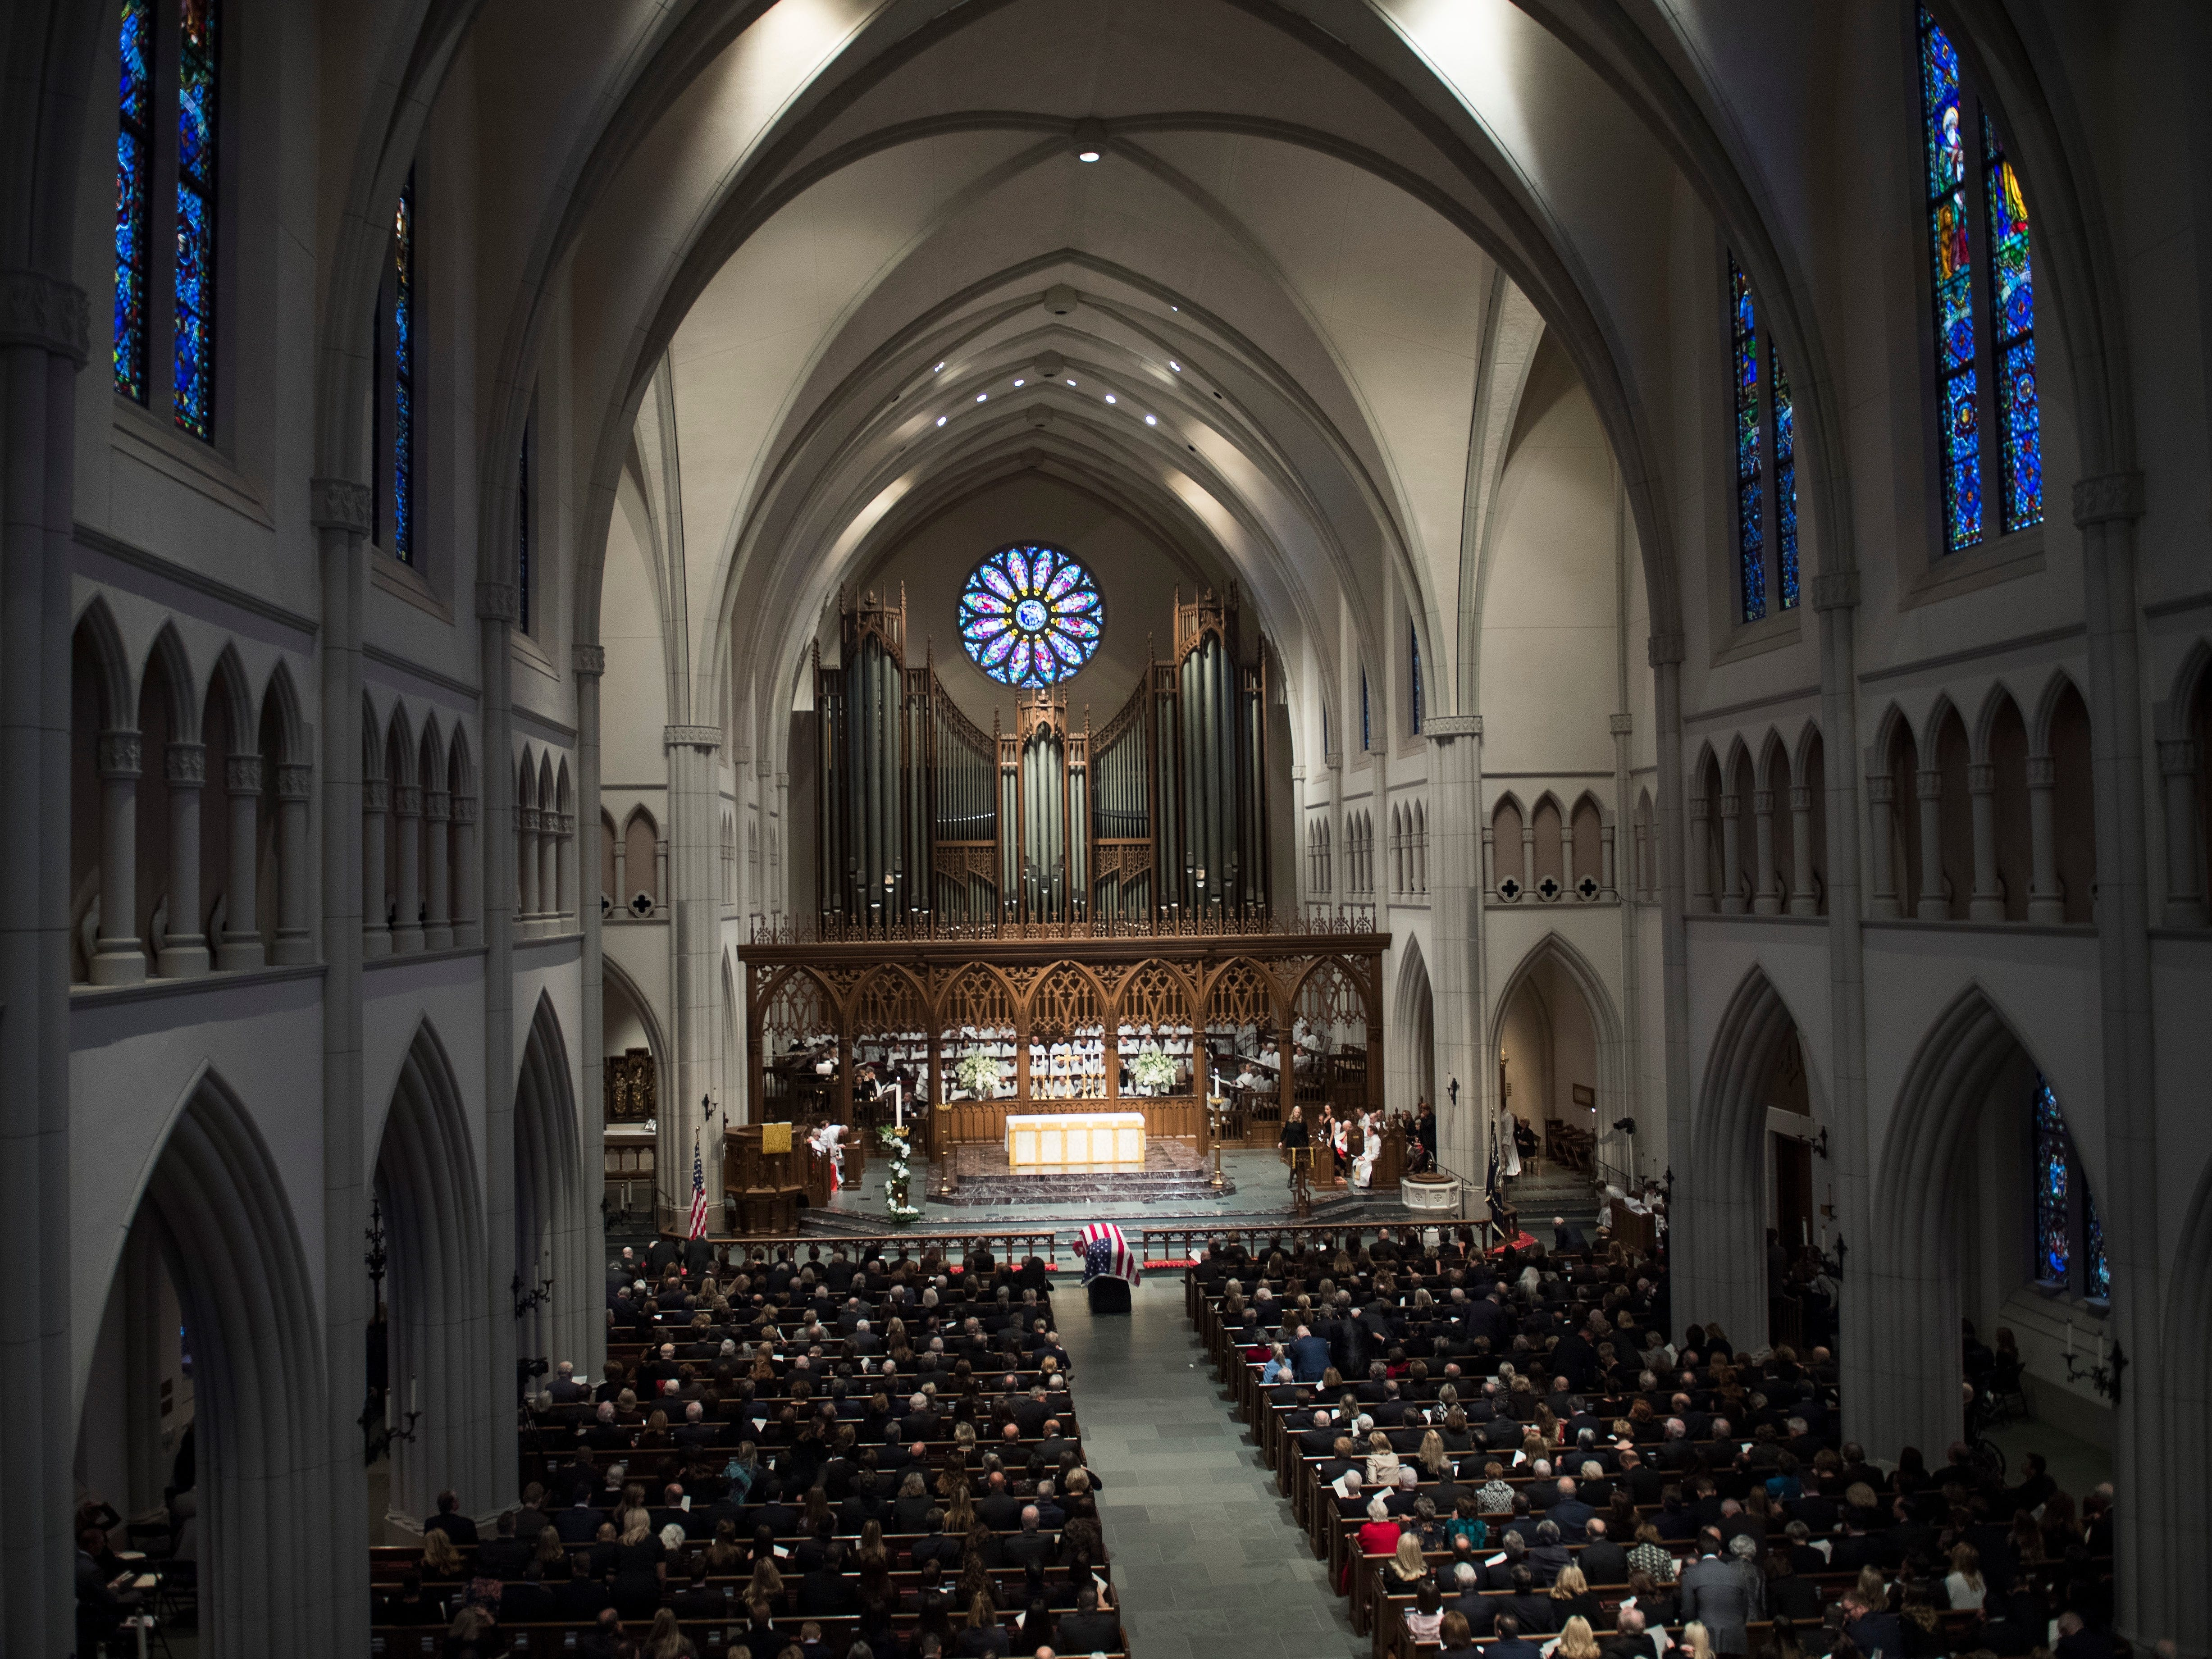 People attend a funeral service for former President George H.W. Bush at St. Martin's Episcopal Church in Houston, Thursday, Dec. 6, 2018.